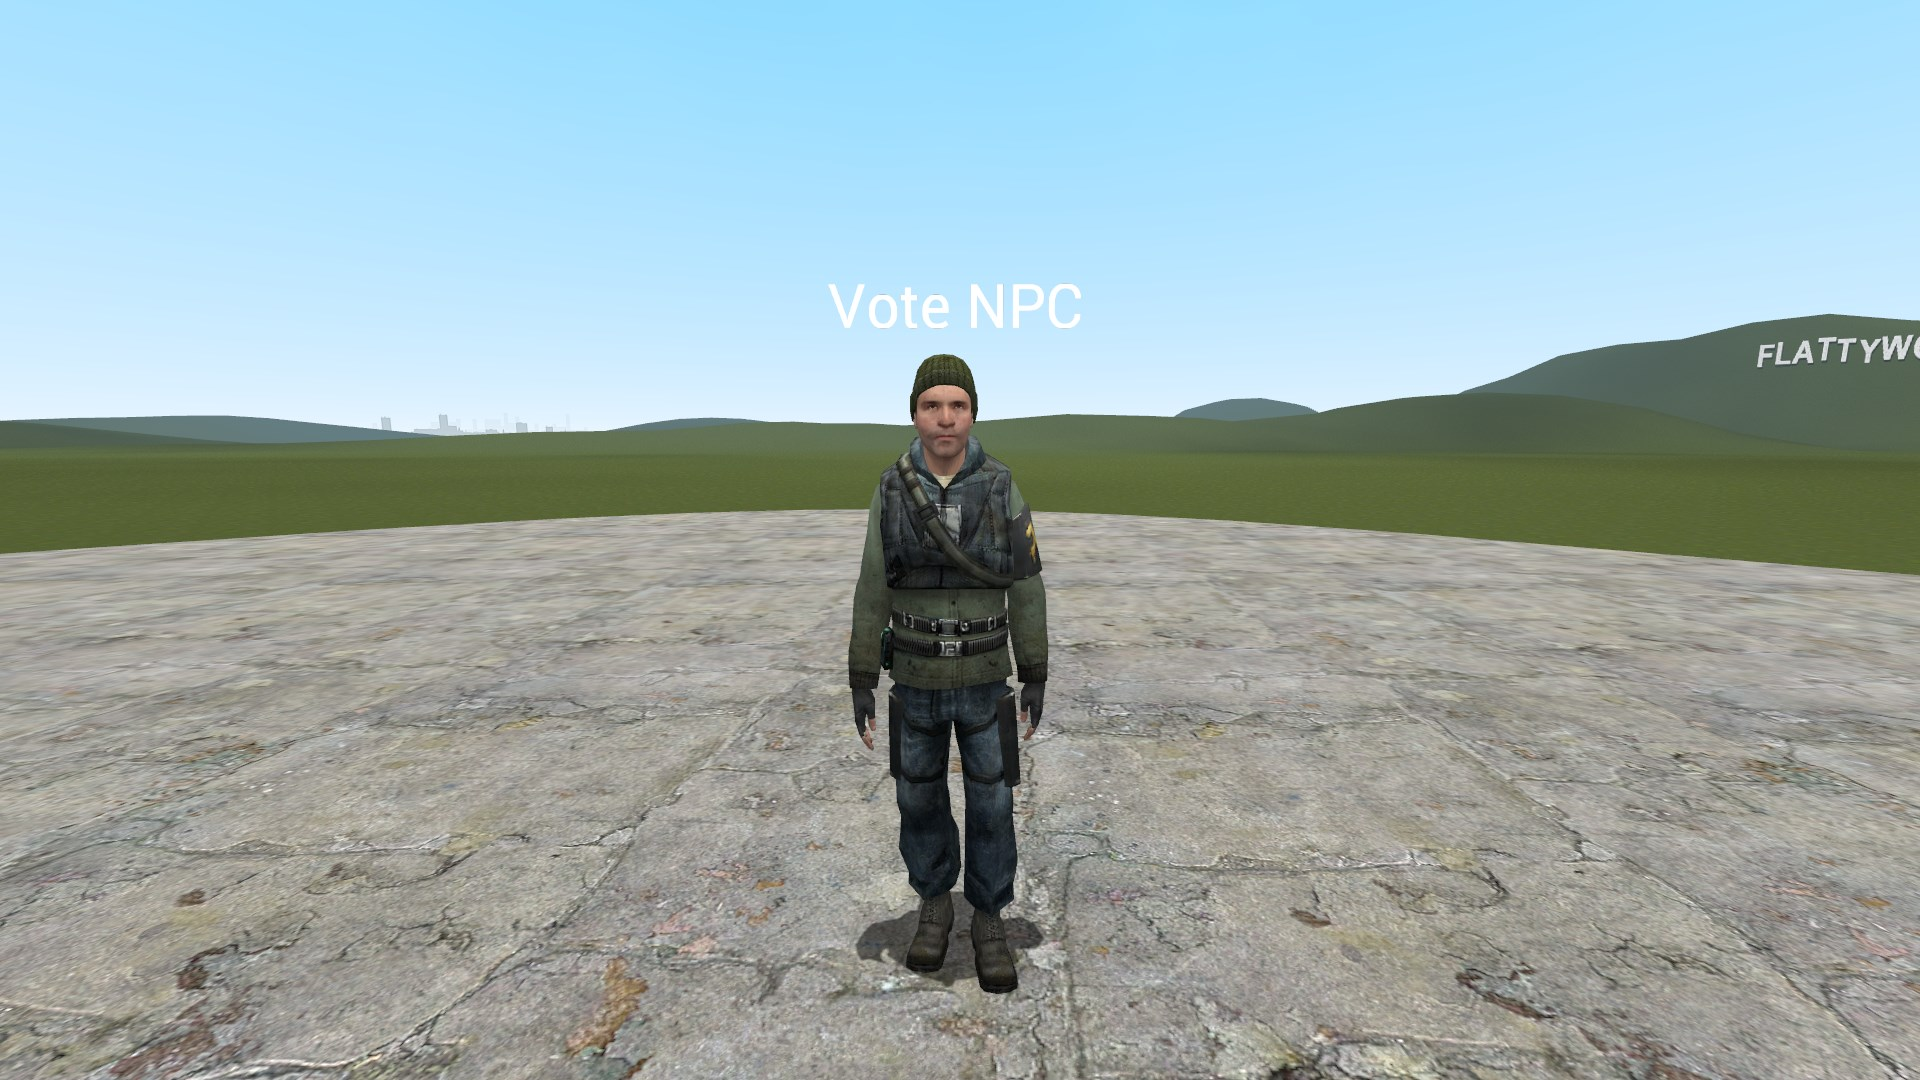 NPC easy to place with one command and has built in persistance.